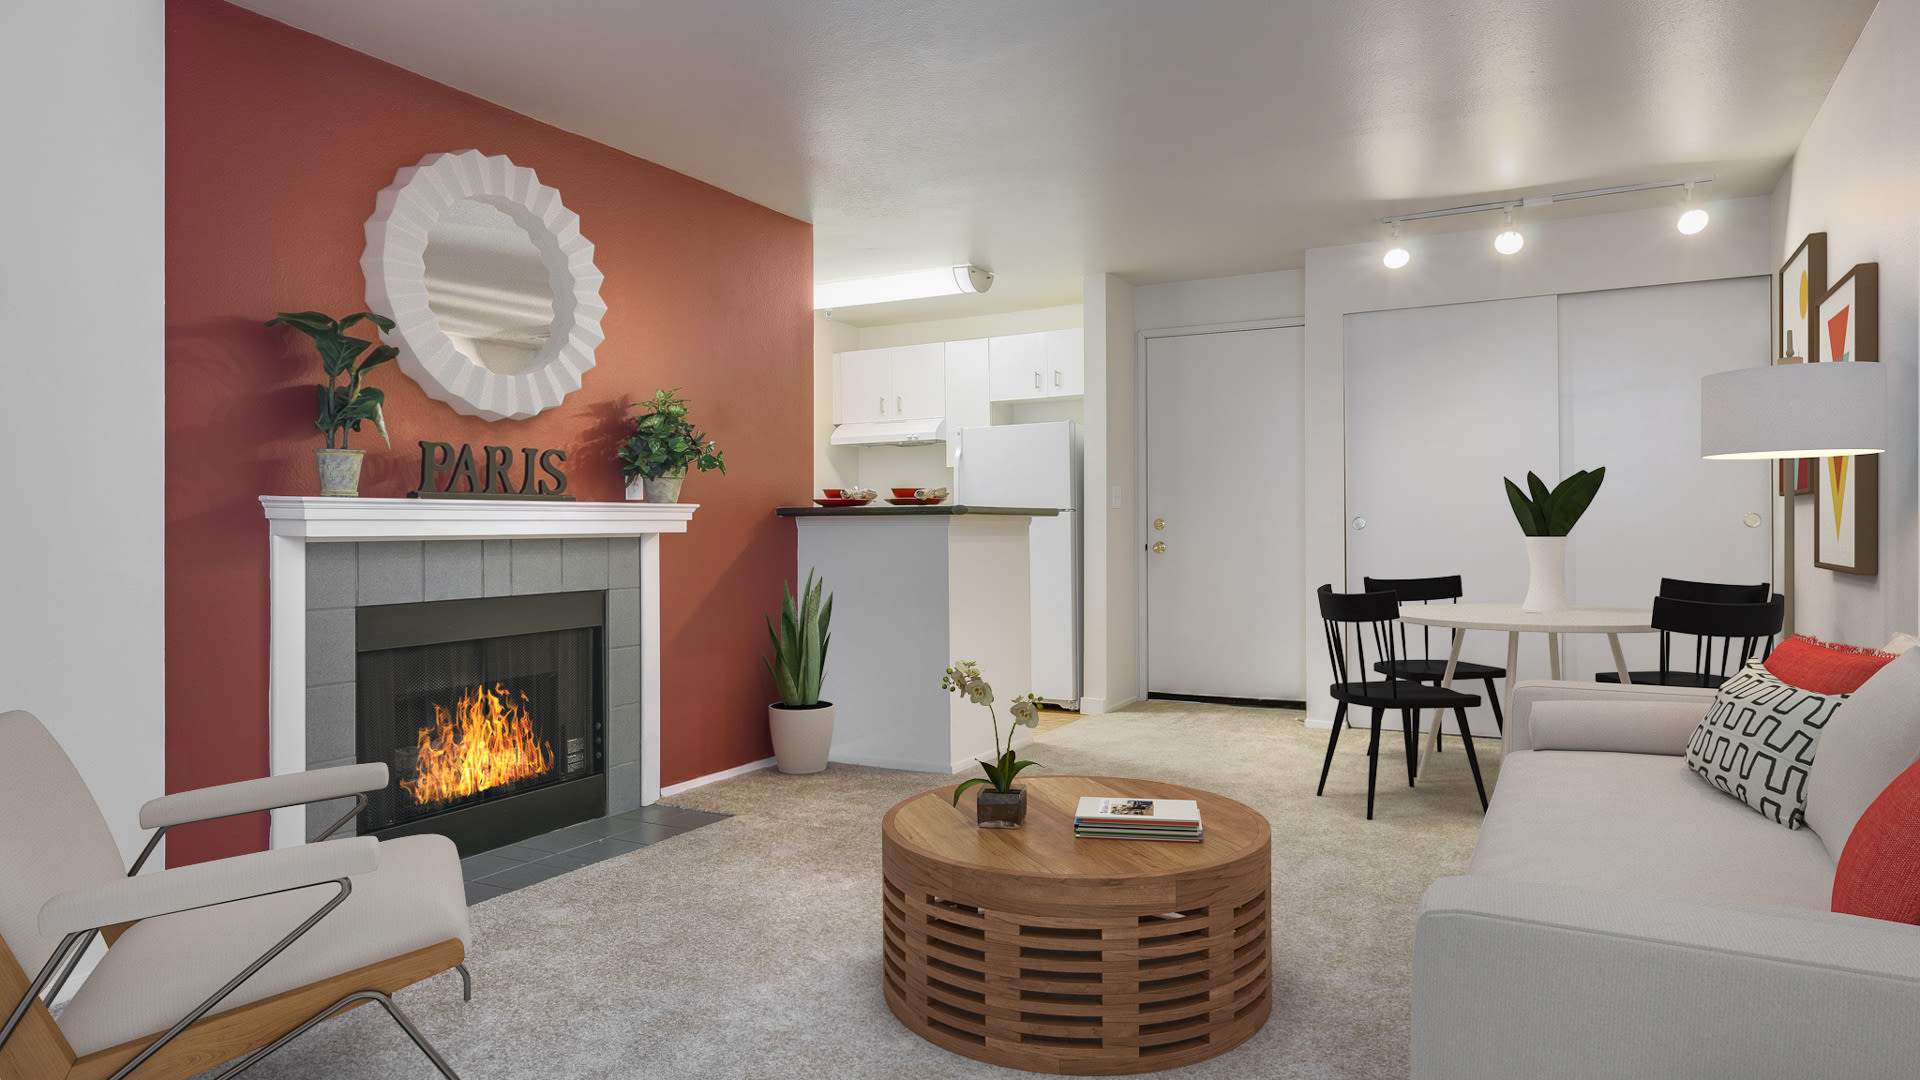 Seventh and James Apartments - Carpeted Living Room with Fireplace